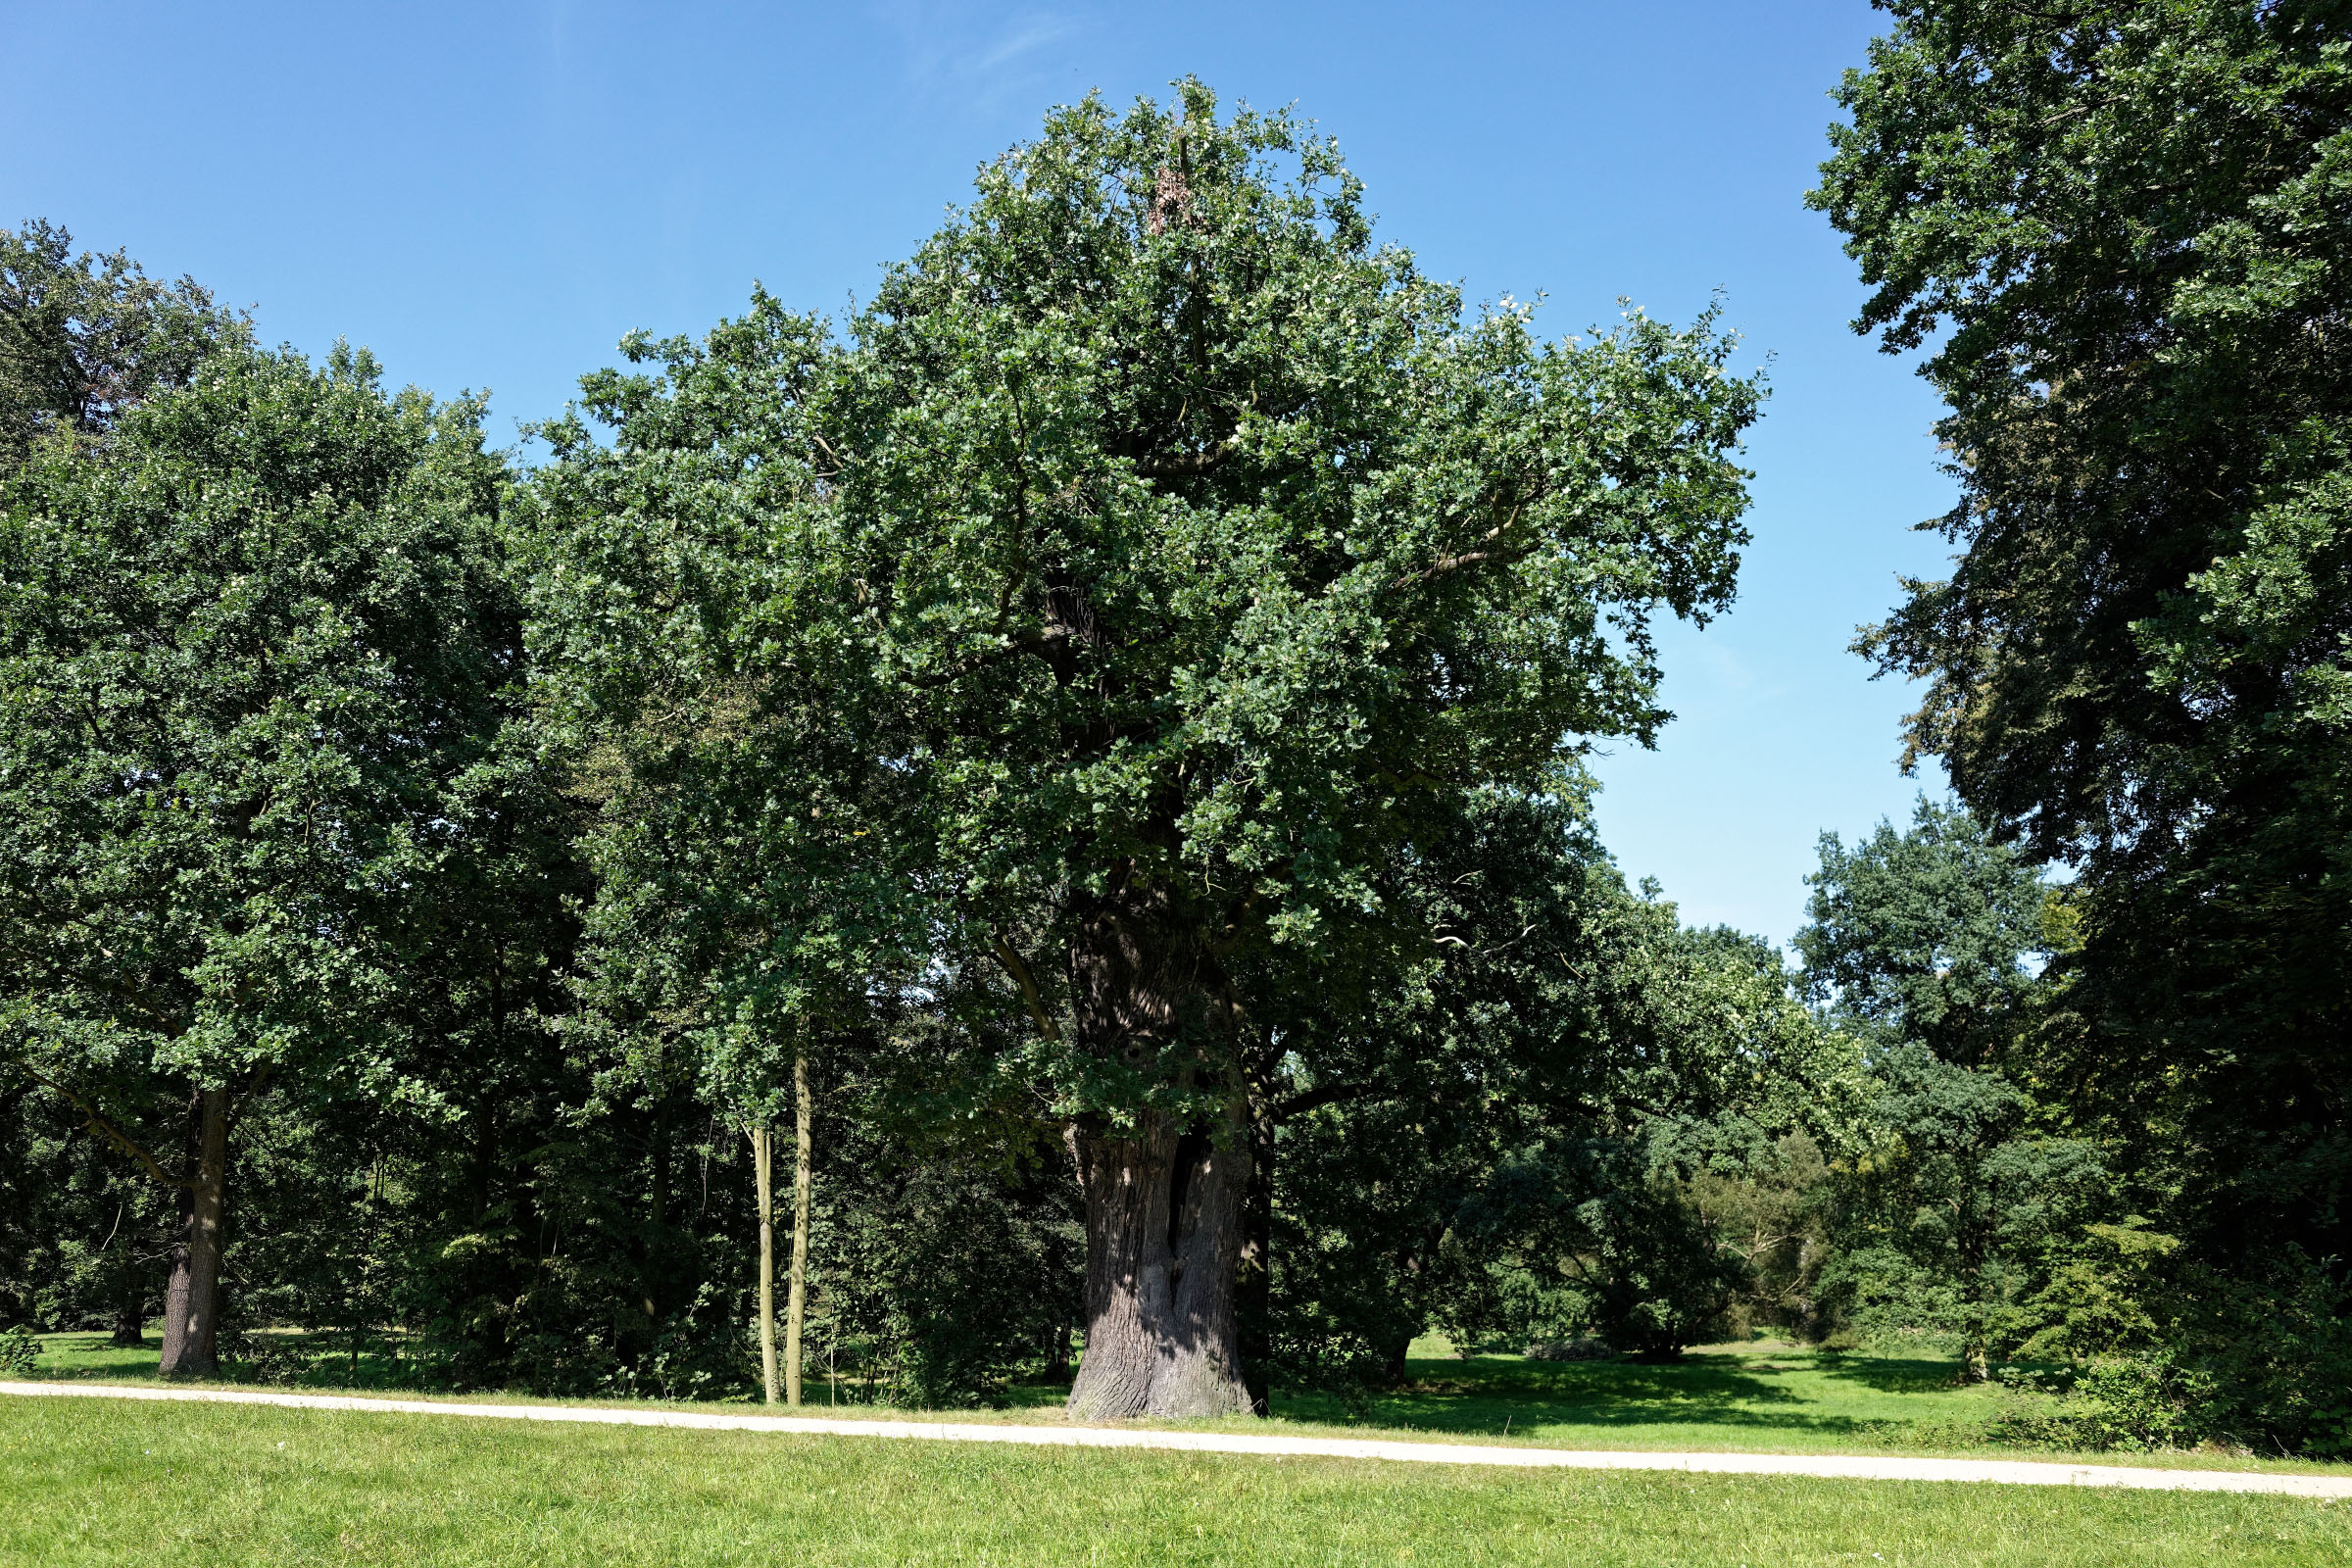 Eiche im Fürst-Pückler Park in Bad Muskau